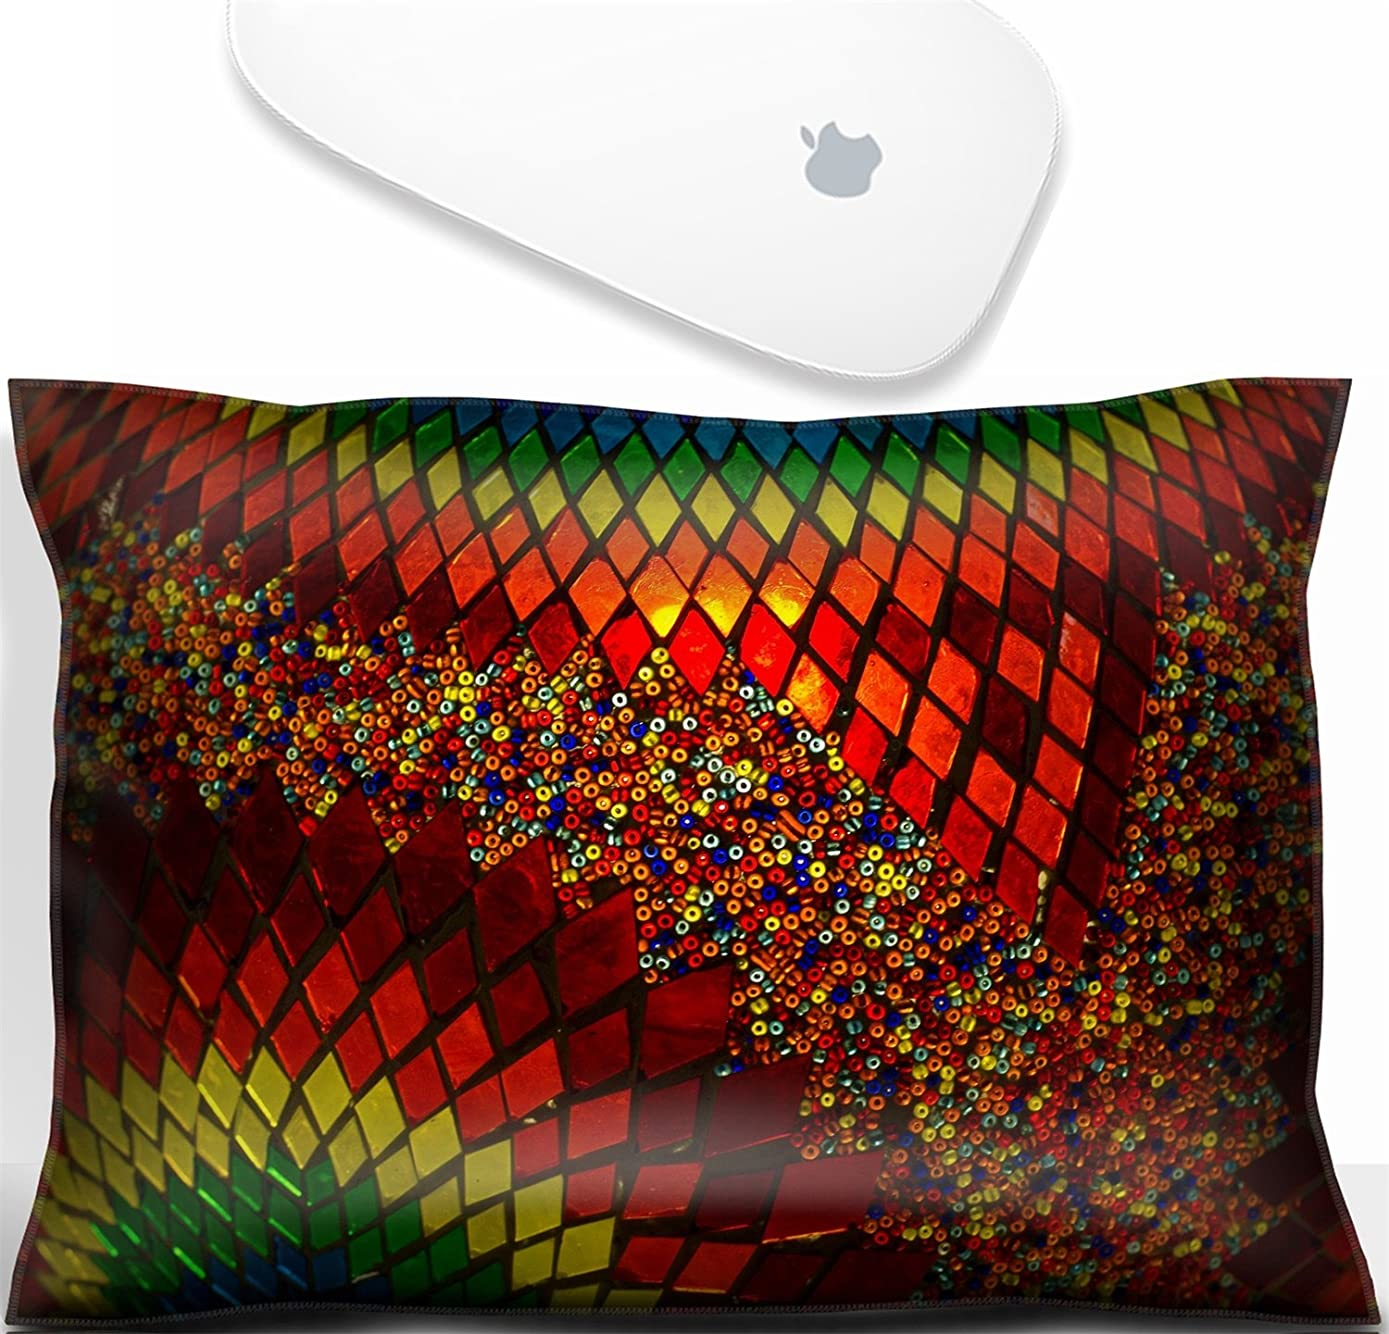 Luxlady Mouse Wrist Rest Office Decor Wrist Supporter Pillow IMAGE: 43647770 Background texture of traditional multicolored turkish lamp hanging at the Grand Bazaar in Istanbul Turkey